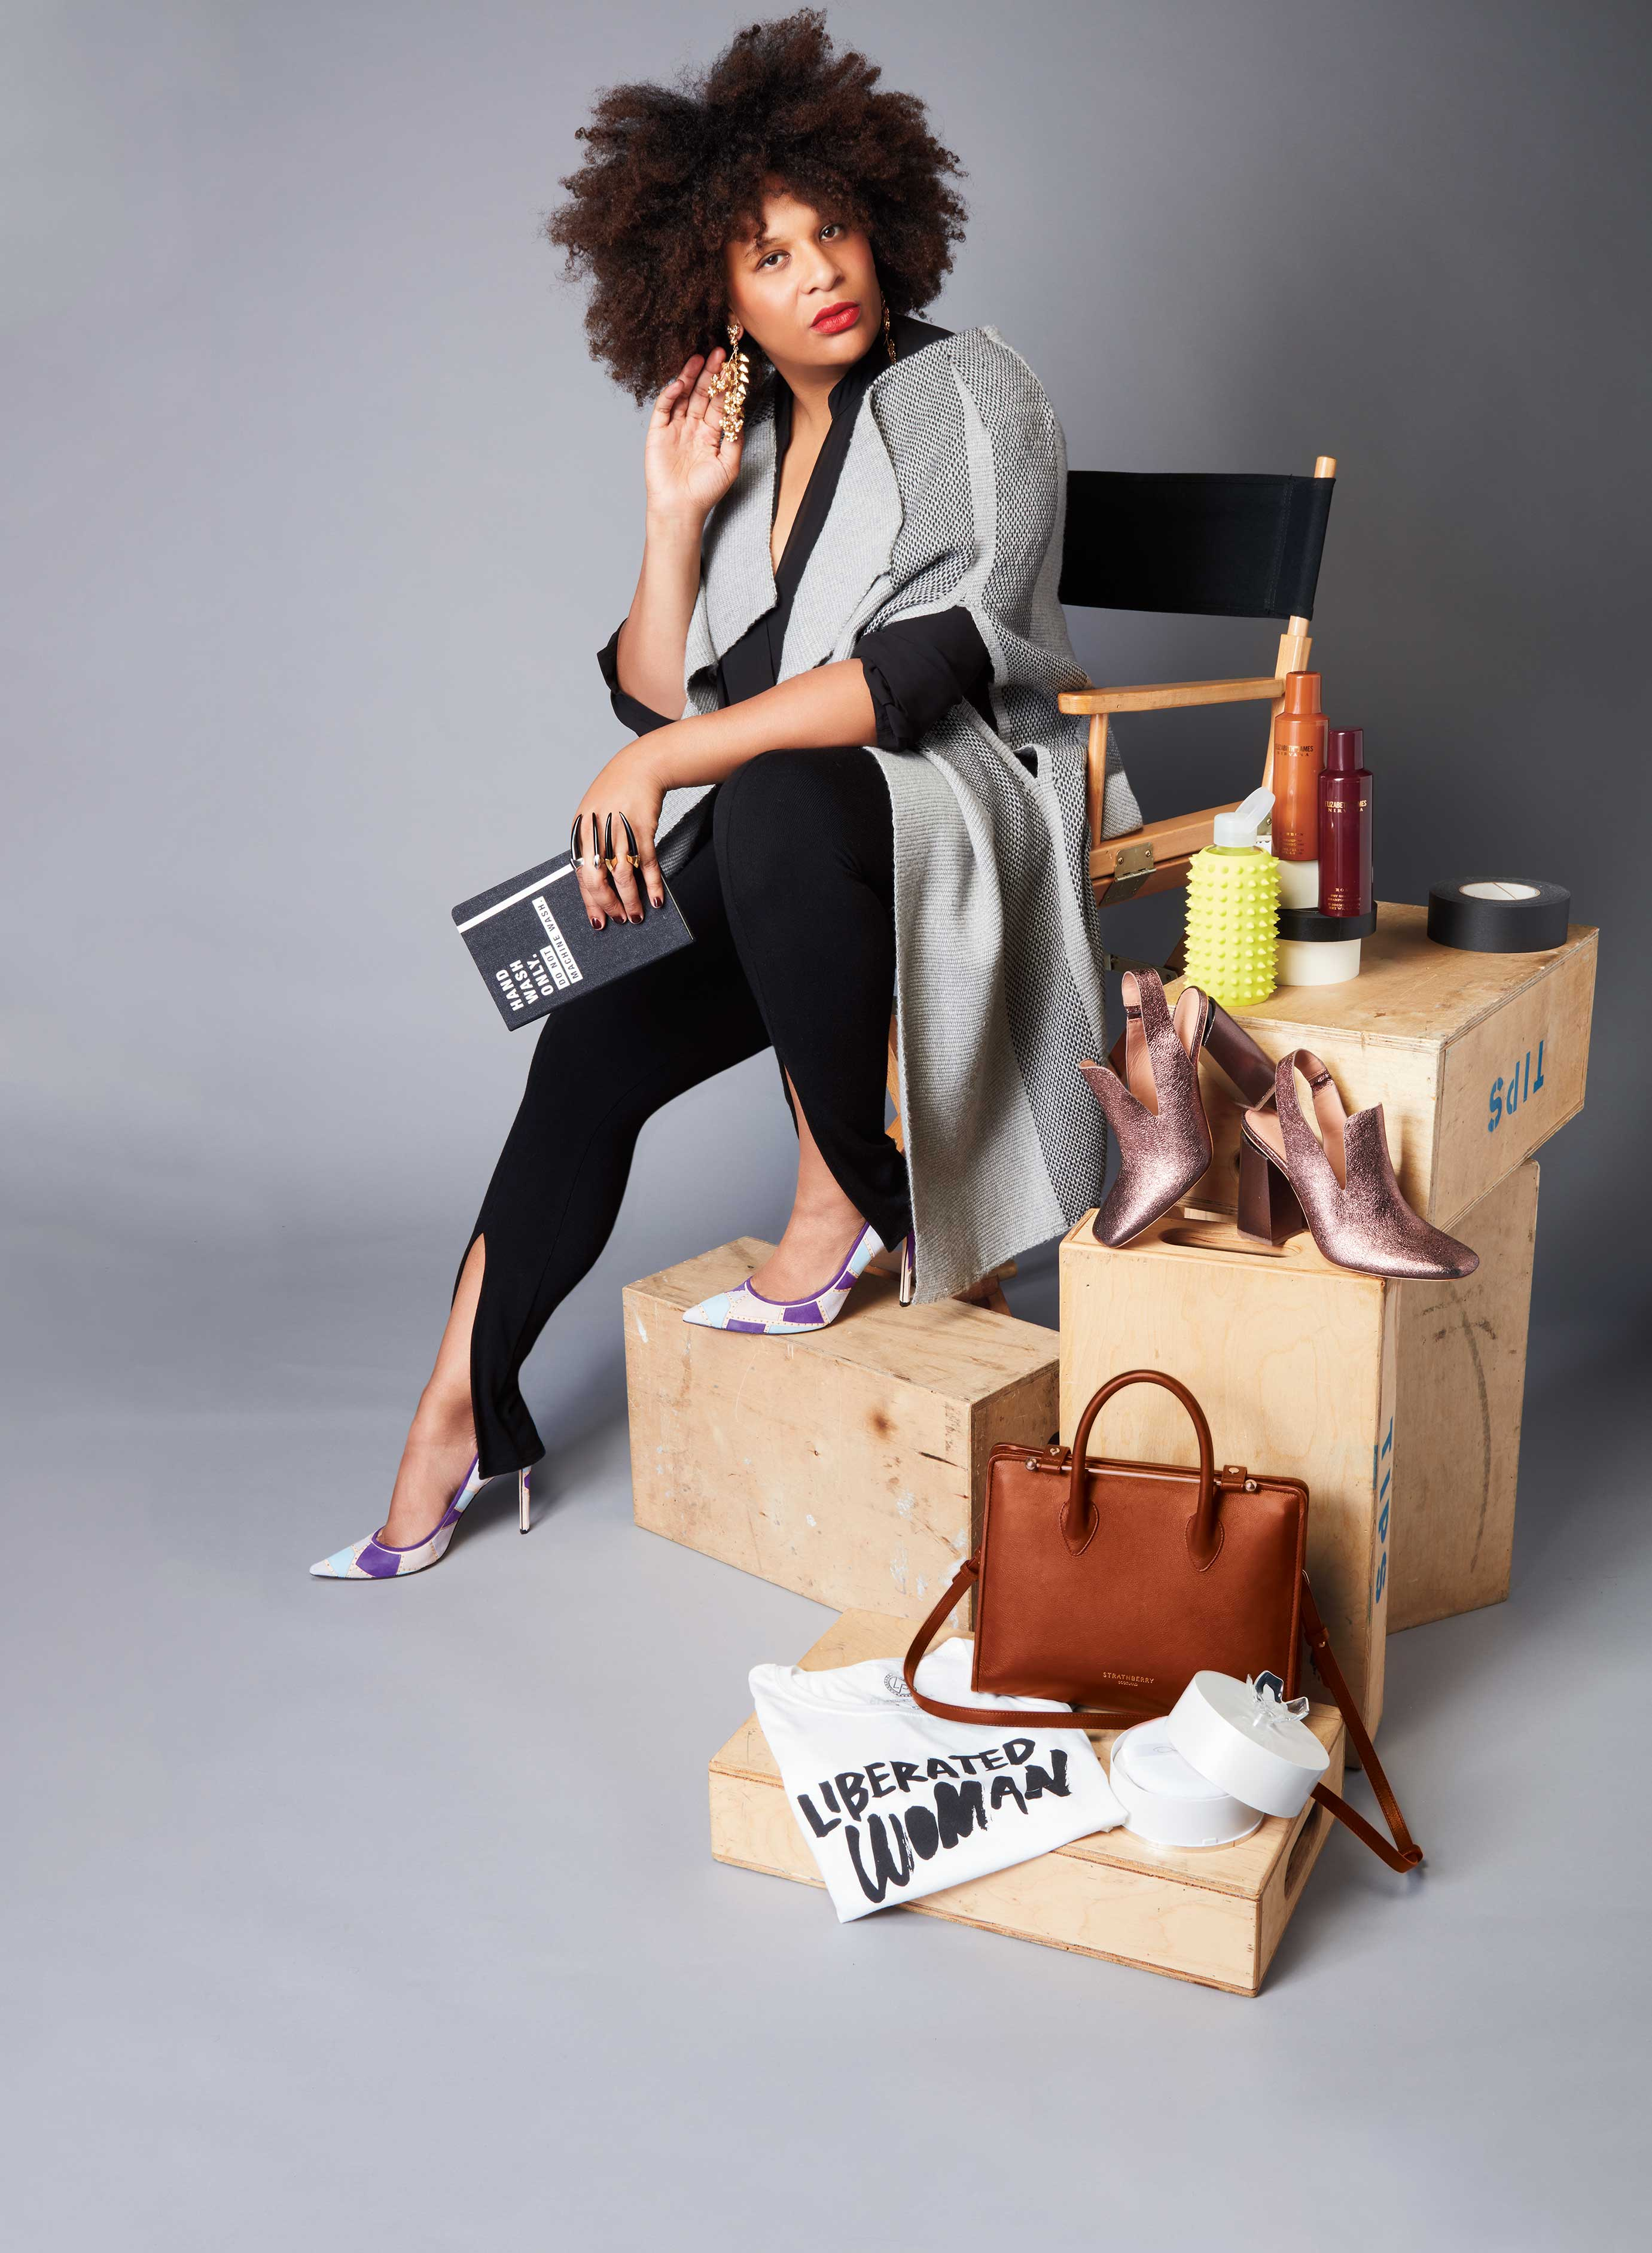 Dope Stuff On My Desk: All The Fashion And Beauty Items You Need To Strut Into Fall With Style